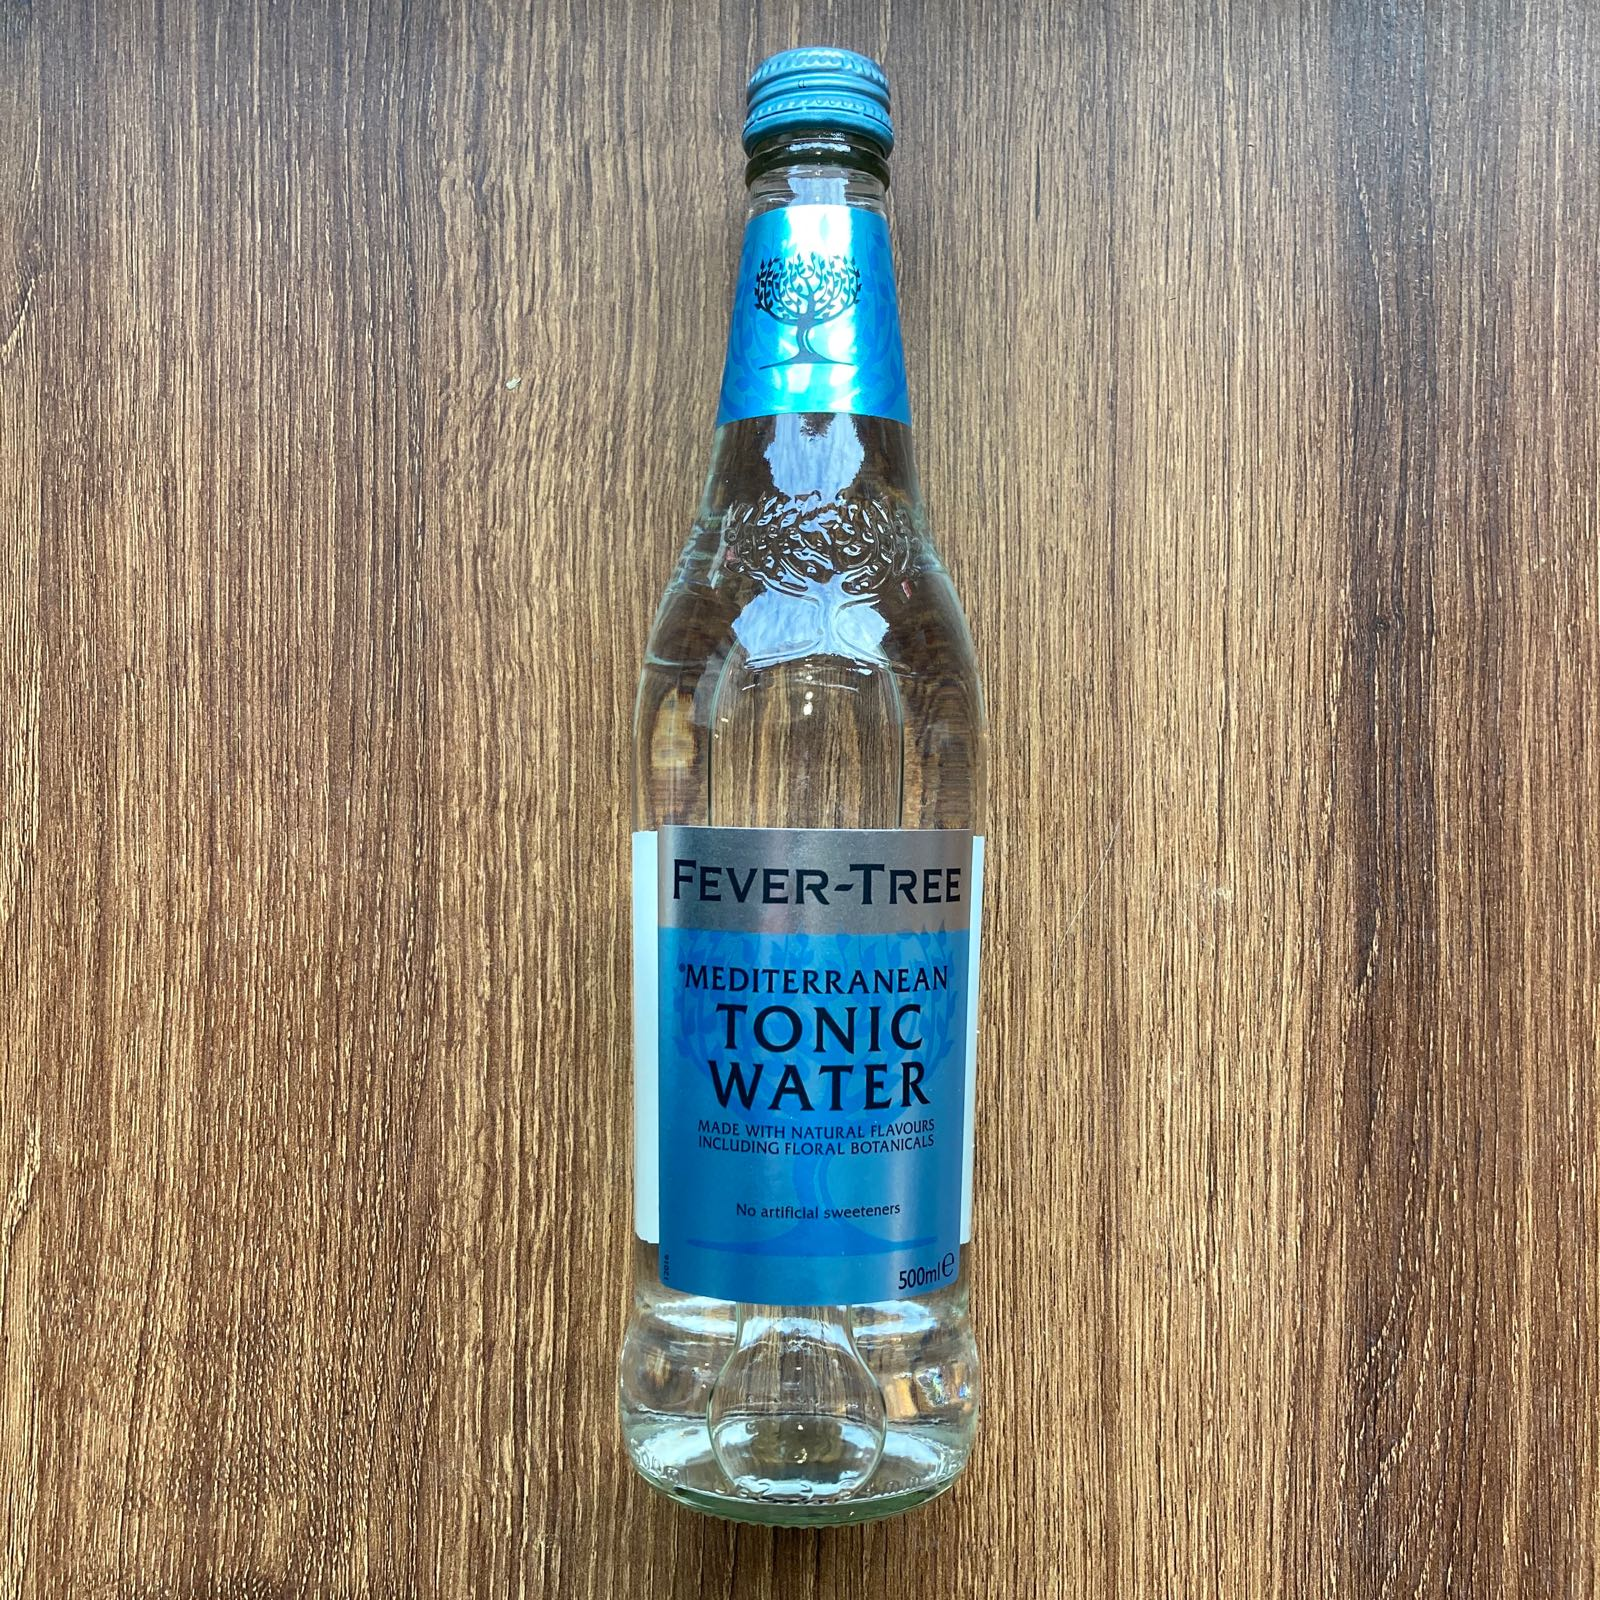 Mediterranean Tonic Water - Fever-Tree